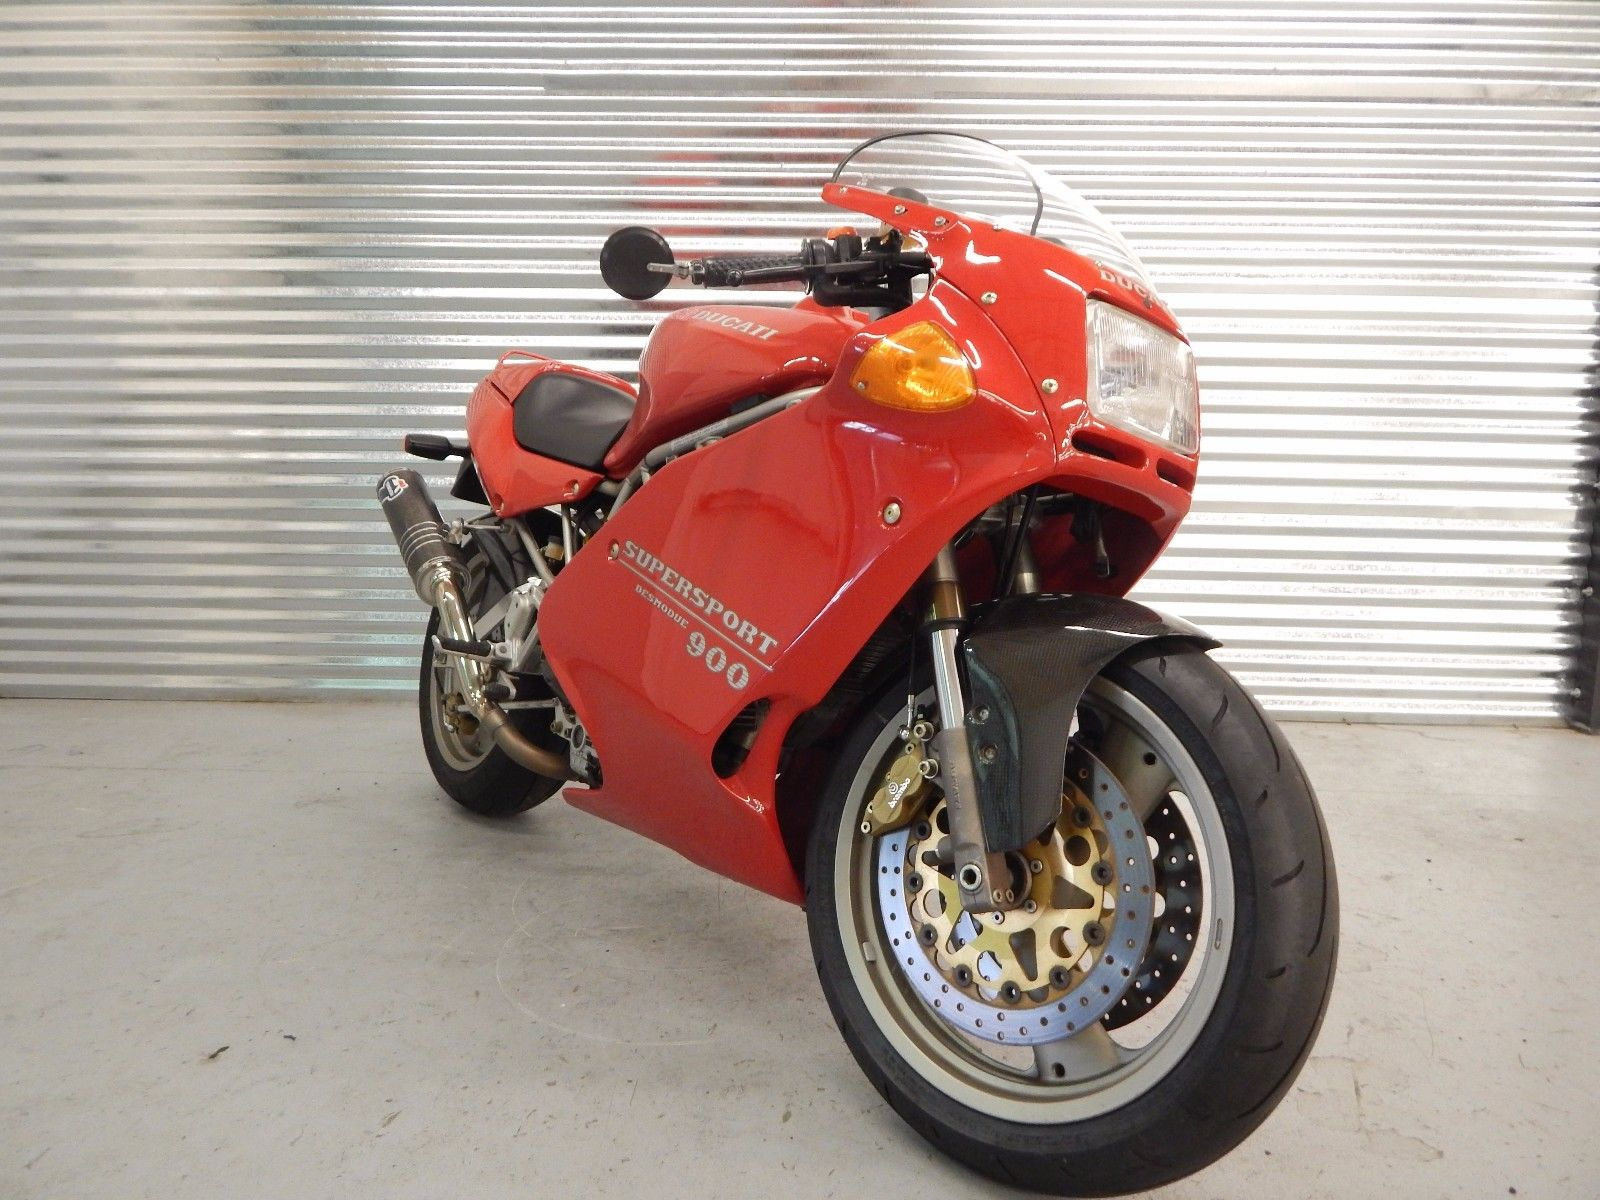 ducati 900ss sp archives rare sportbikes for sale. Black Bedroom Furniture Sets. Home Design Ideas